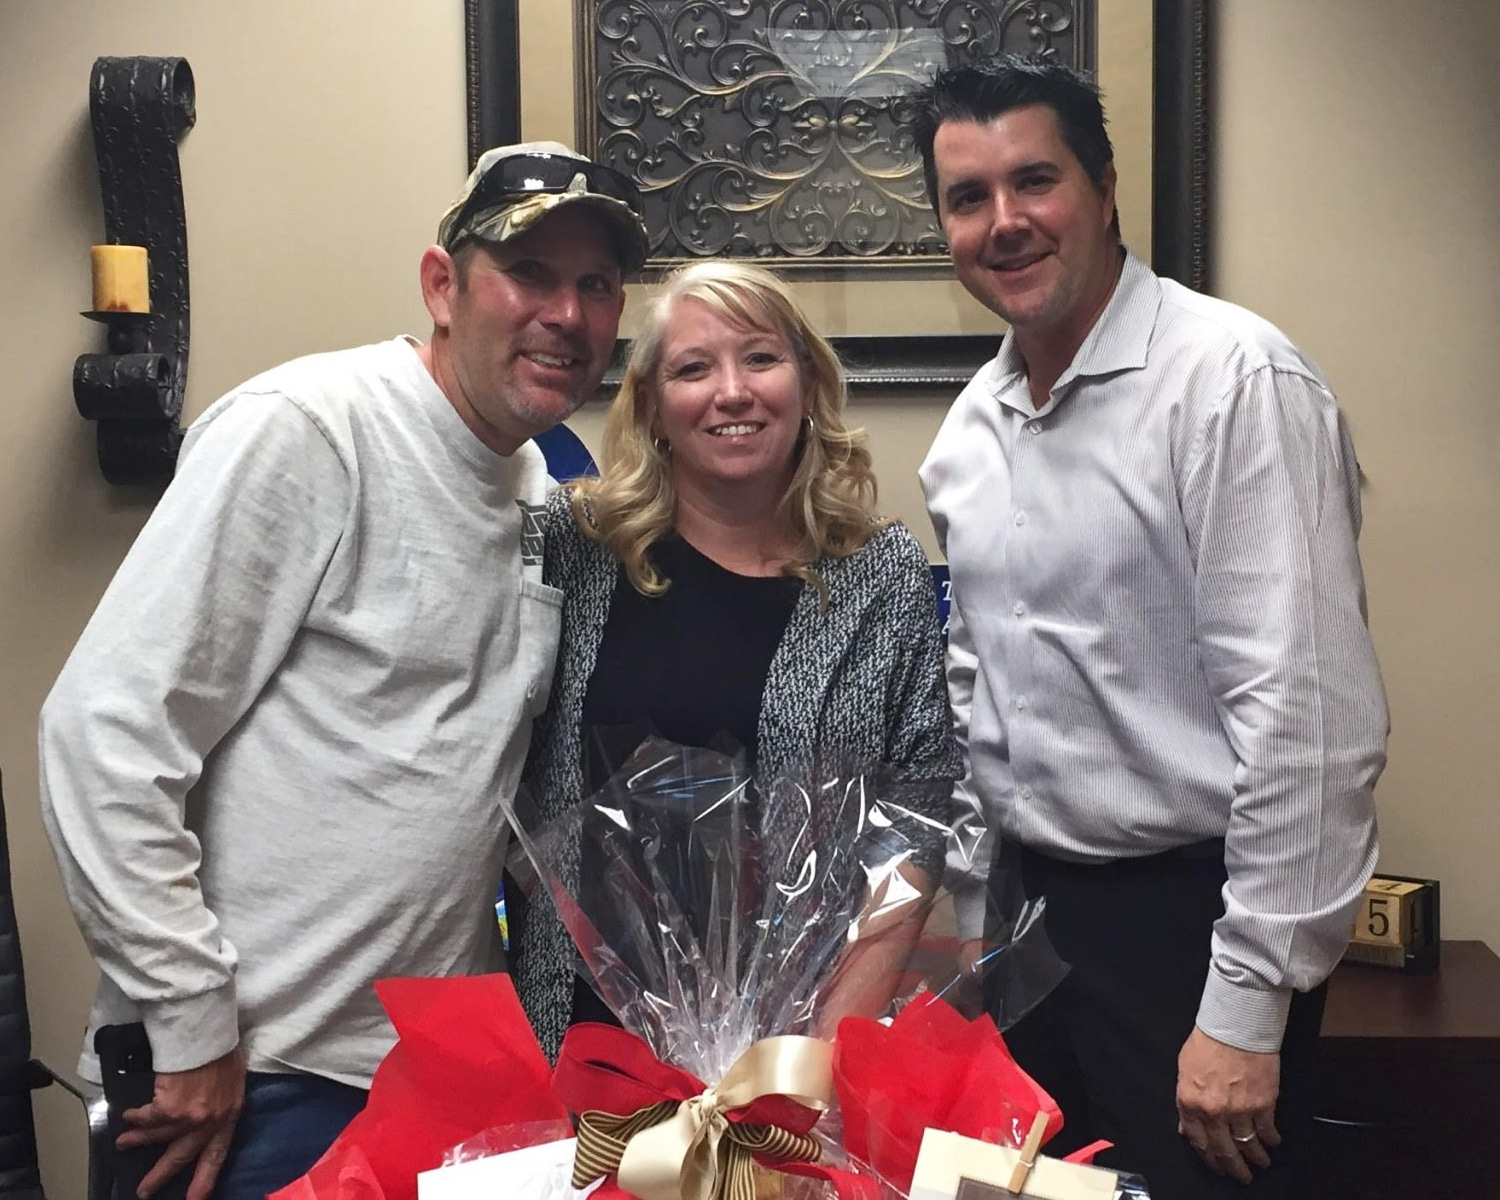 Matt and Stephanie Varney with Escrow Officer, Mark Woodworth